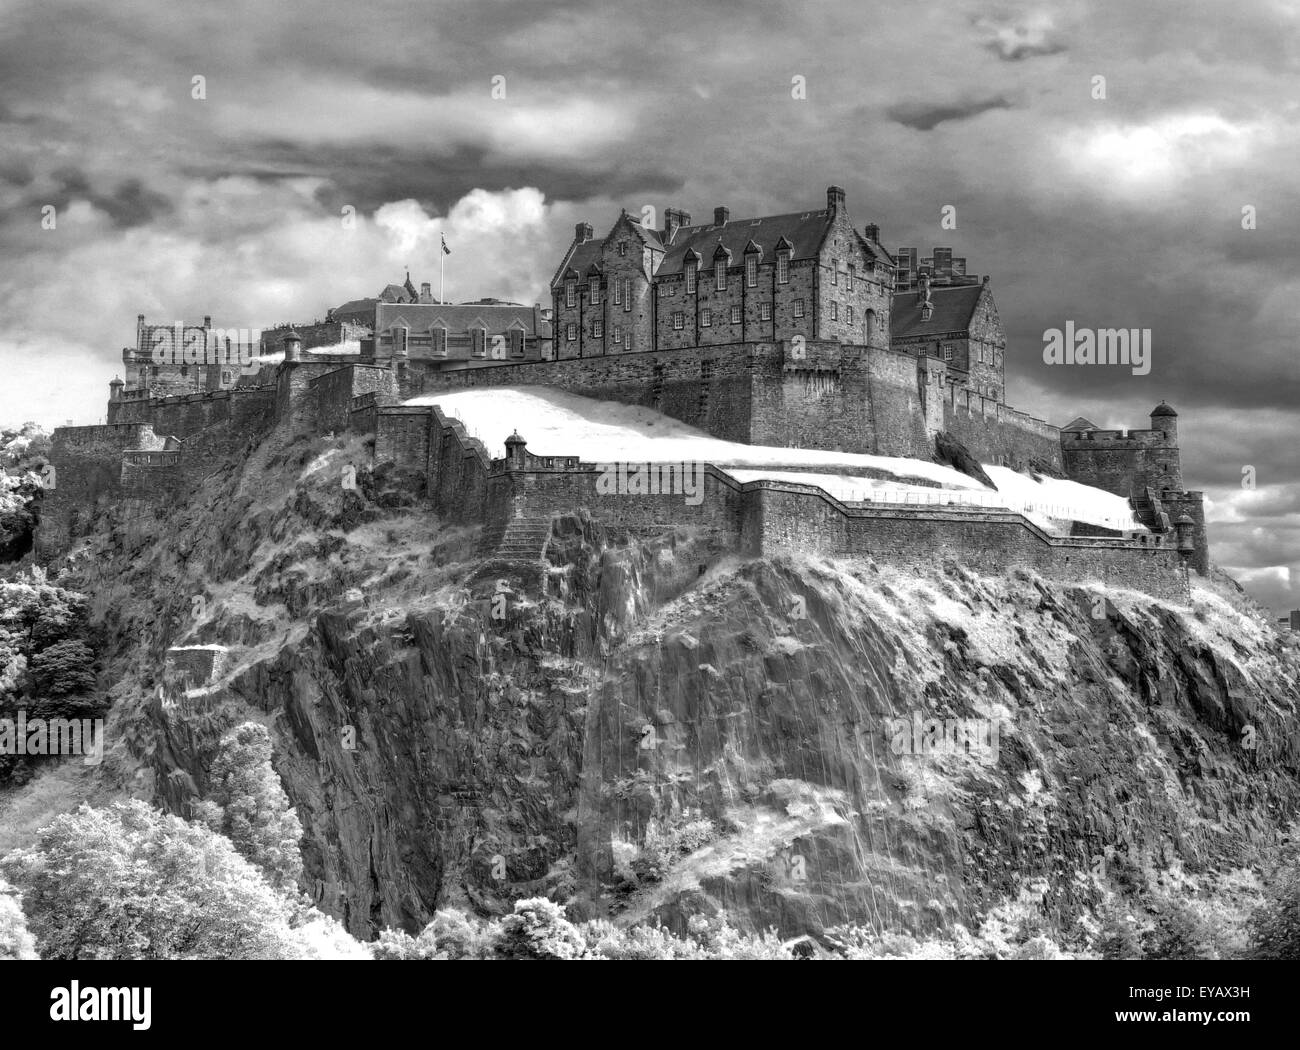 Edinburgh Castle with Dramatic sky, winter Old Town, Scotland - Unesco world heritage site, UK - Stock Image